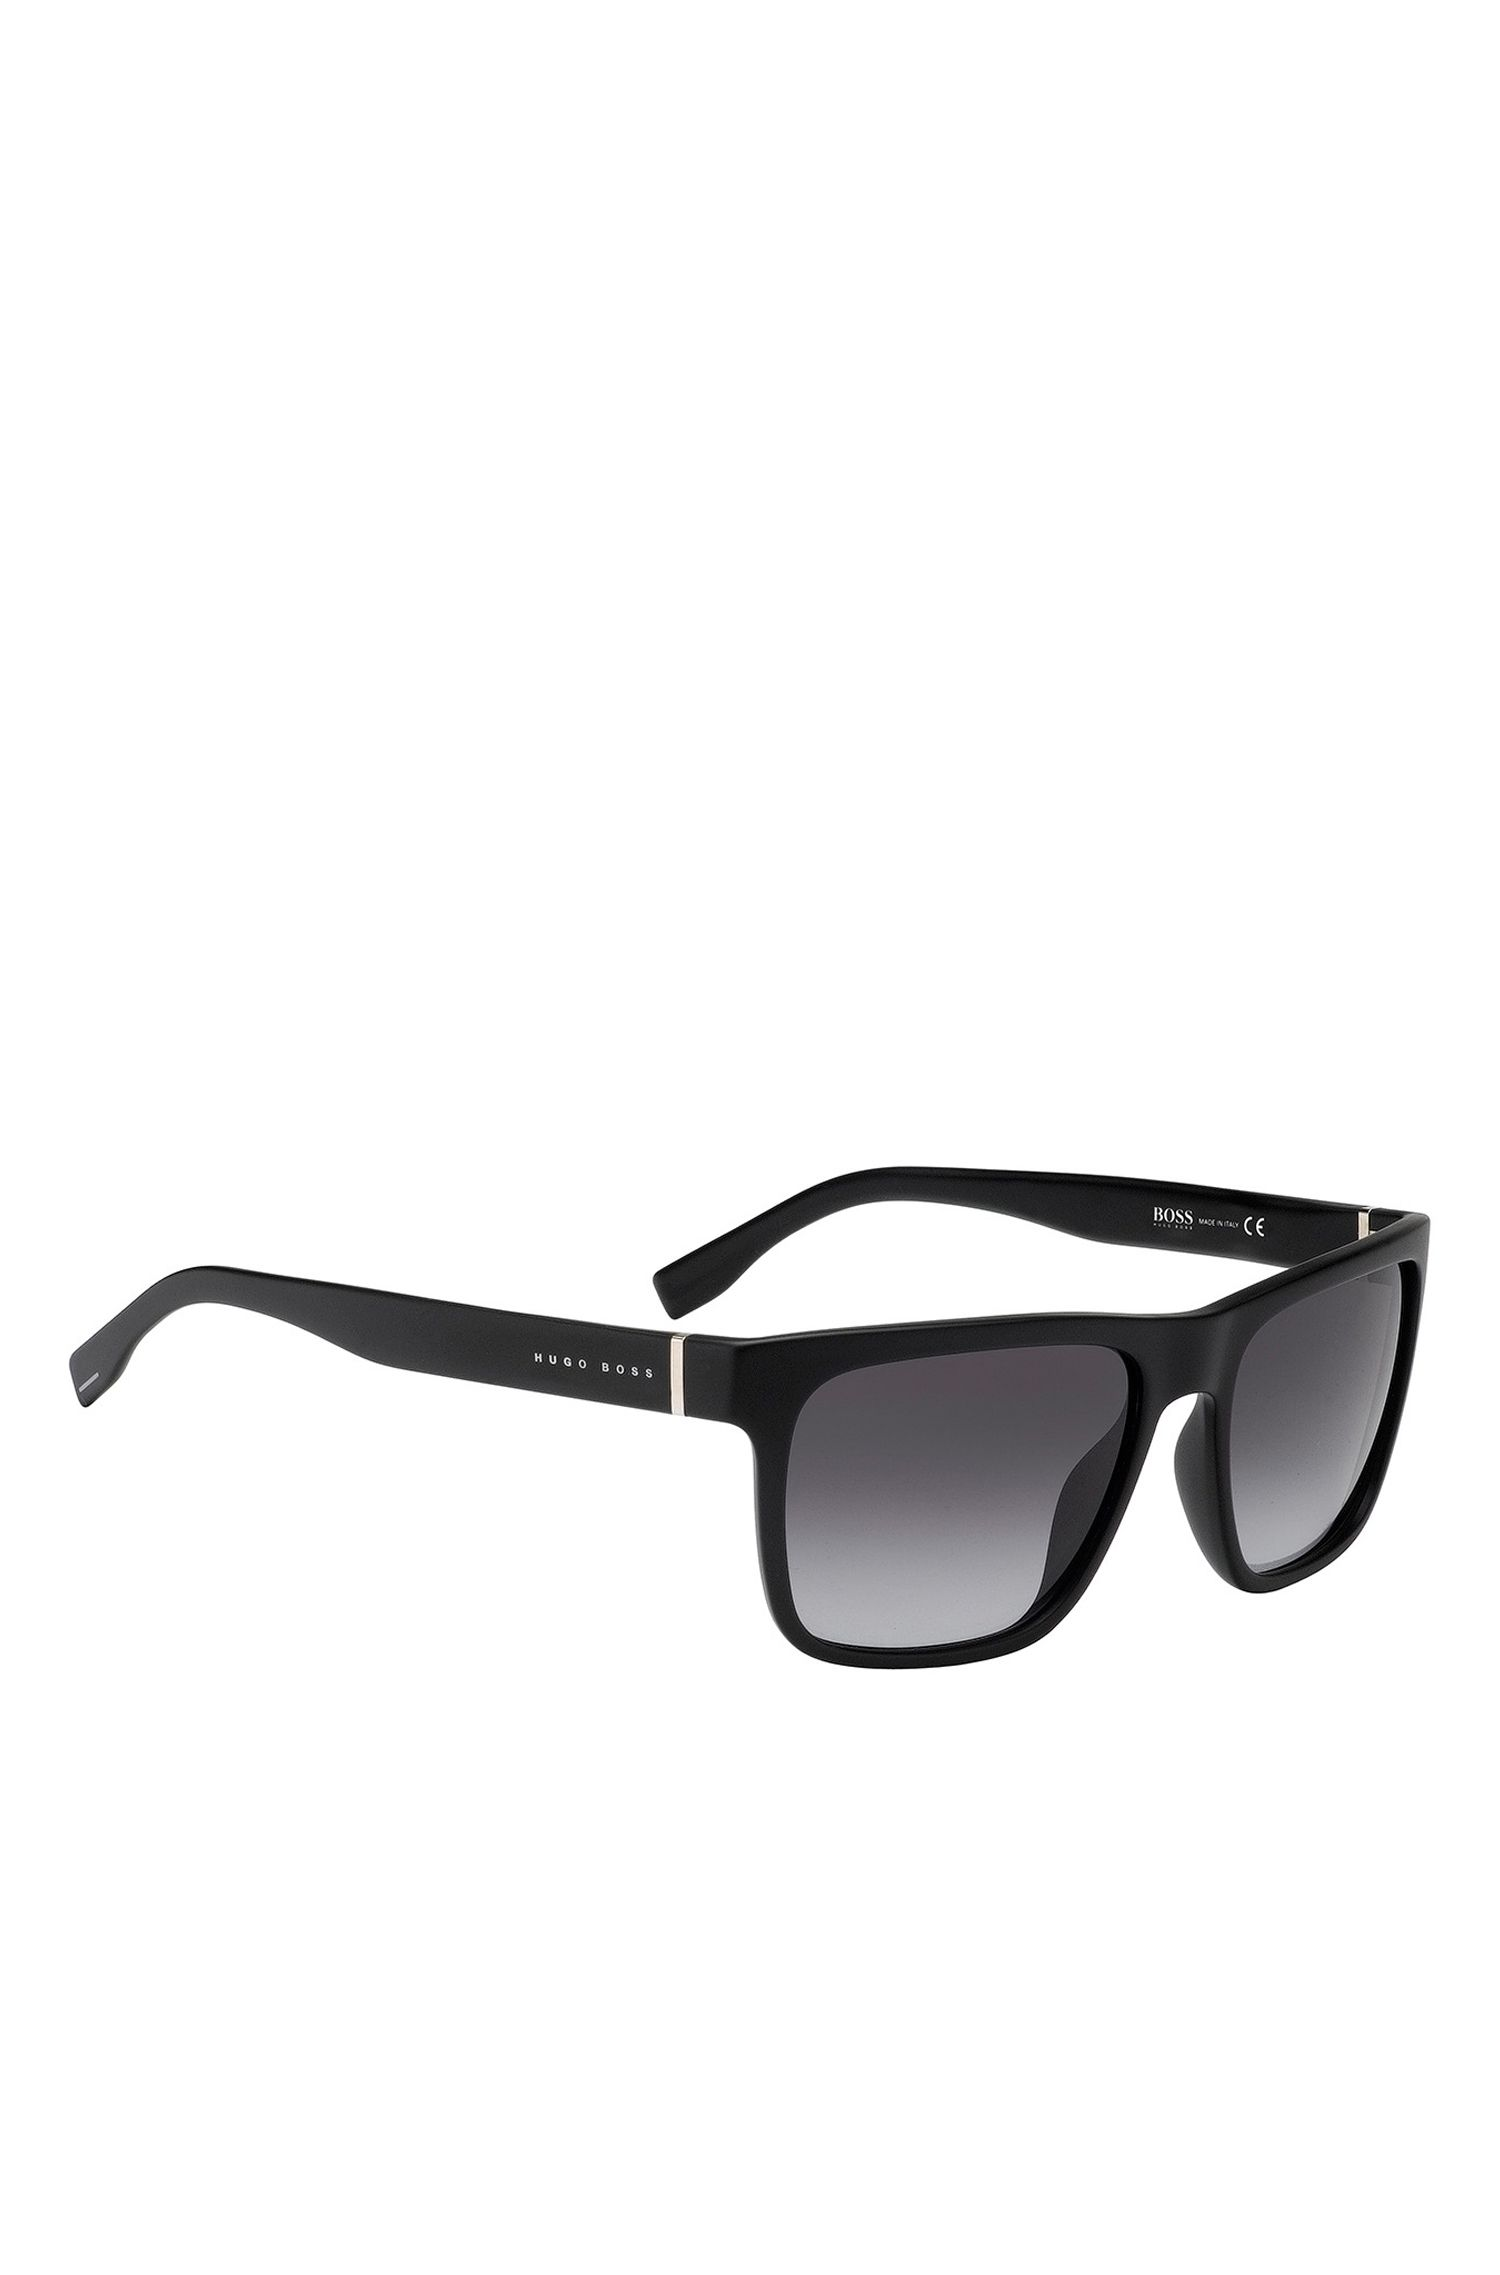 'BOSS 0727' | Shaded Lens Regtangular Optyl Sunglasses